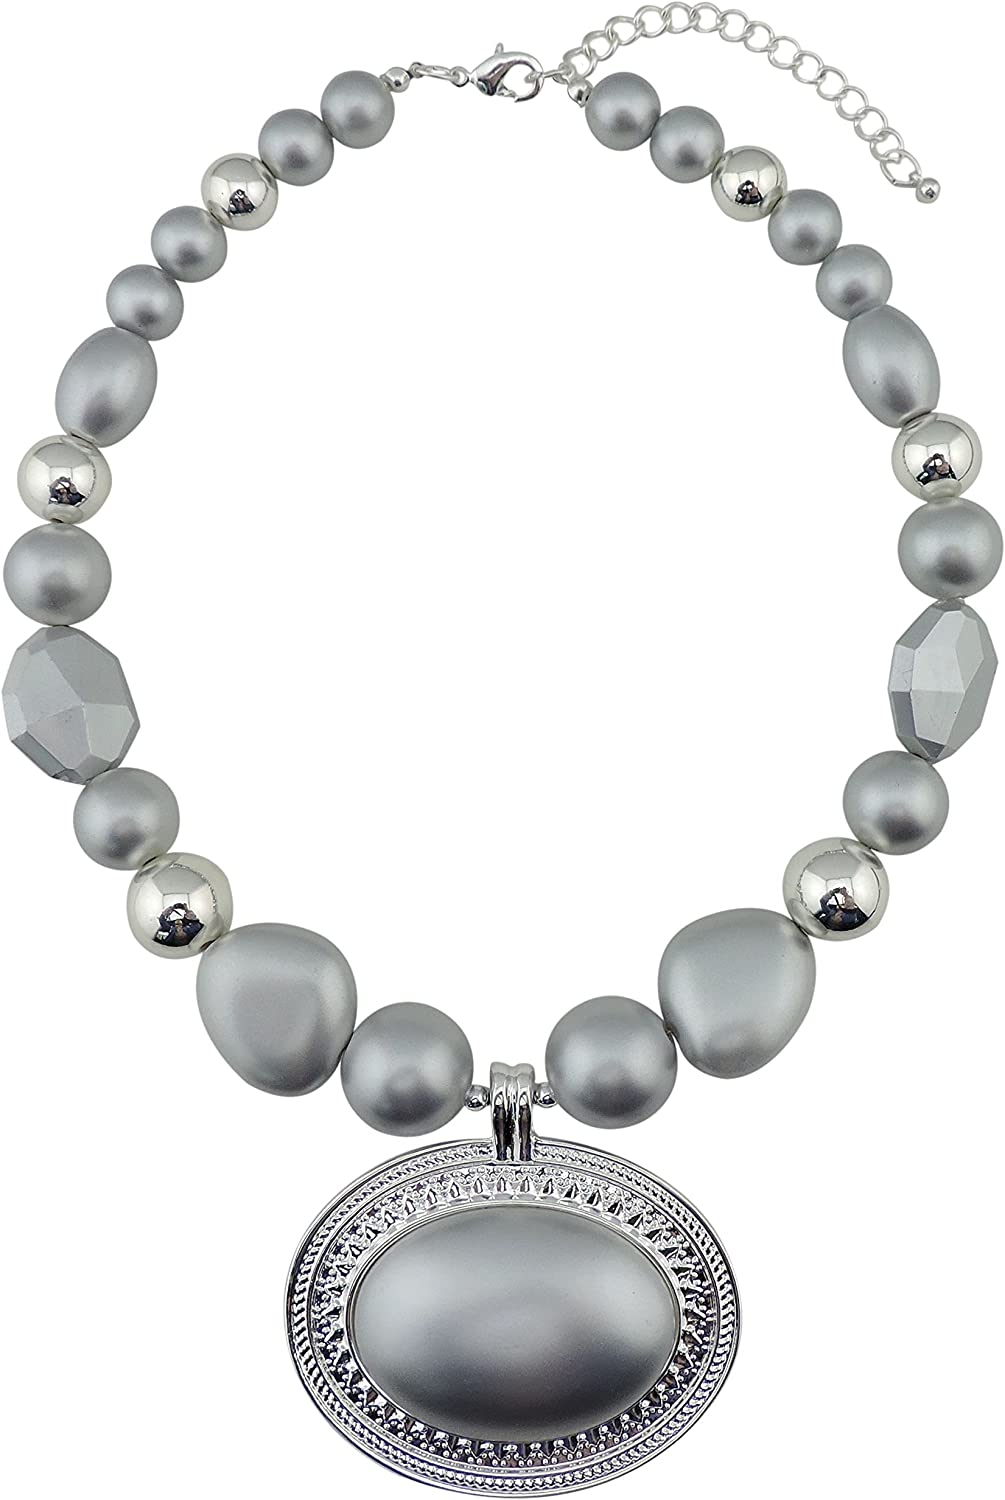 OFFicial store BOCAR Statement Beads Chunky Collar Pendant Necklace Our shop OFFers the best service